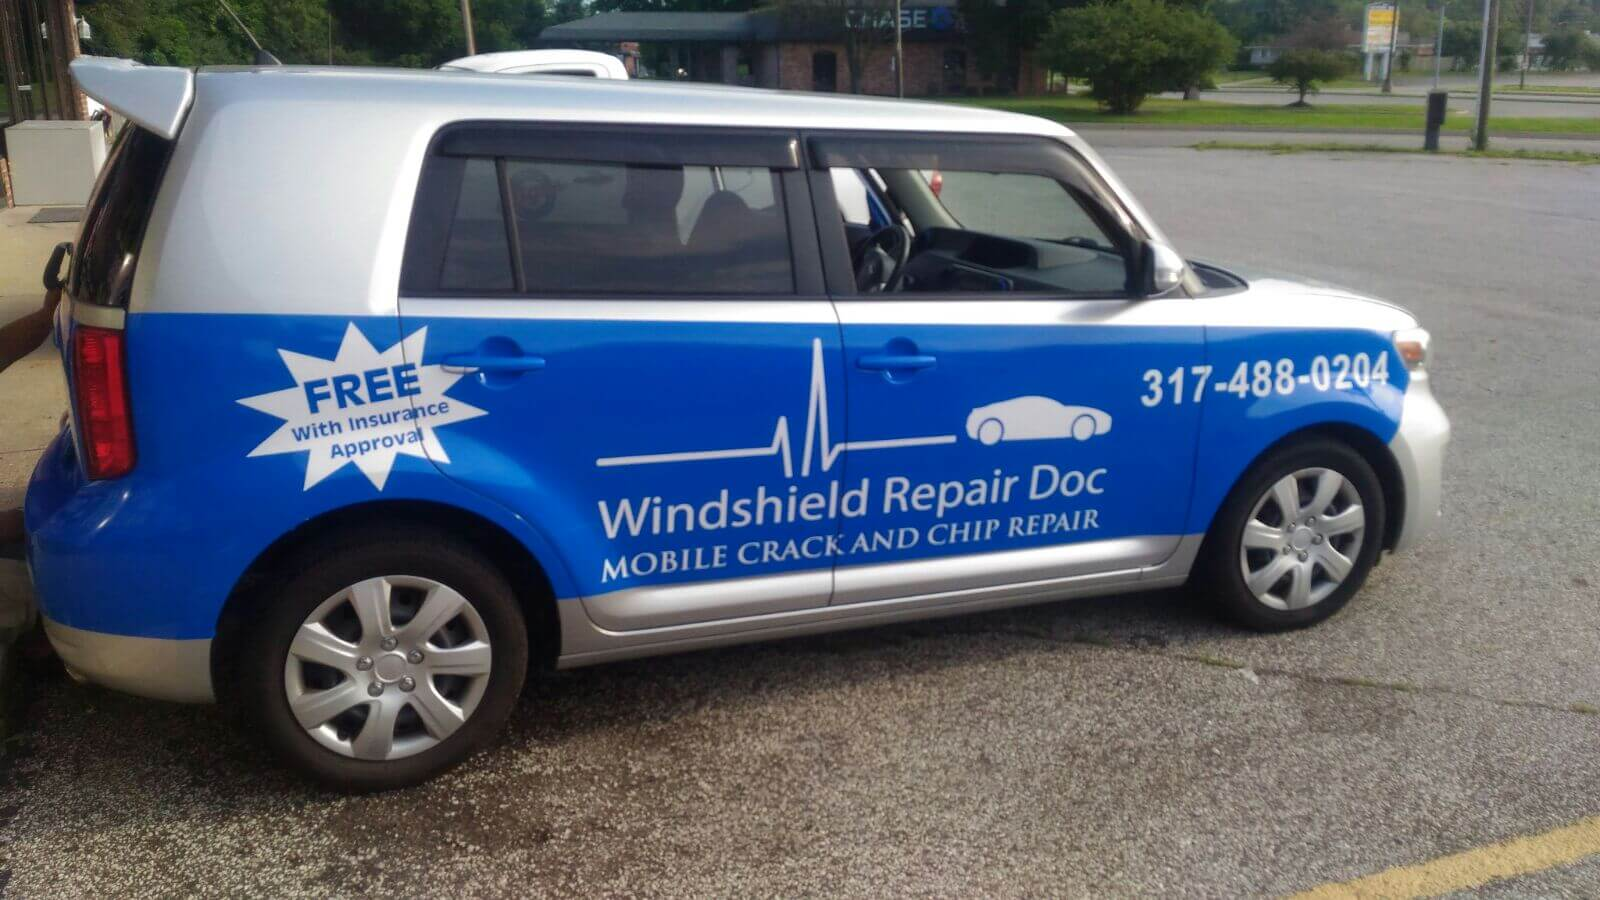 Windshield Repair Near Me >> Mobile Windshield Rock Chip Repair Near Me We Come To You